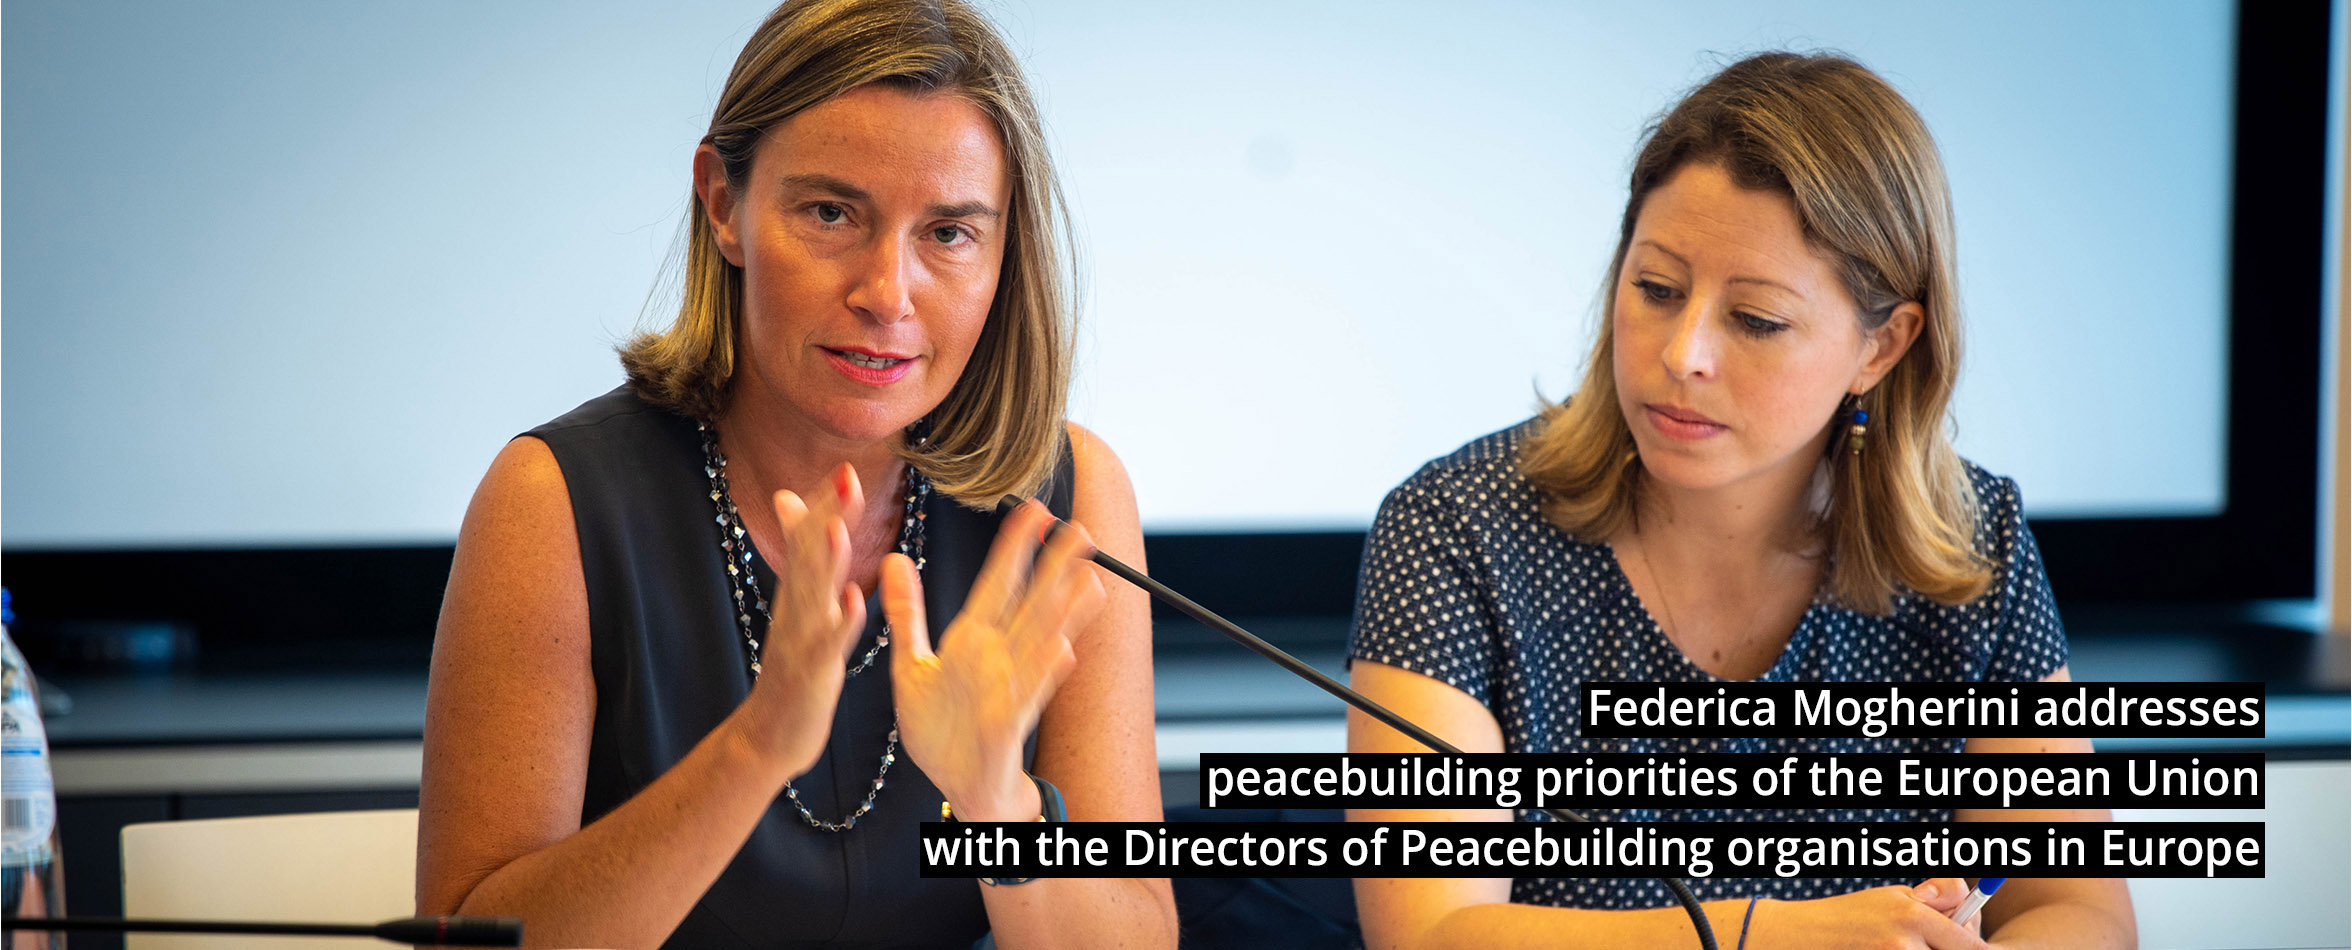 slide-8 Federica Mogherini addresses peacebuilding priorities of the European Union with the Directors of Peacebuilding organisations in Europe – organised by EPLO